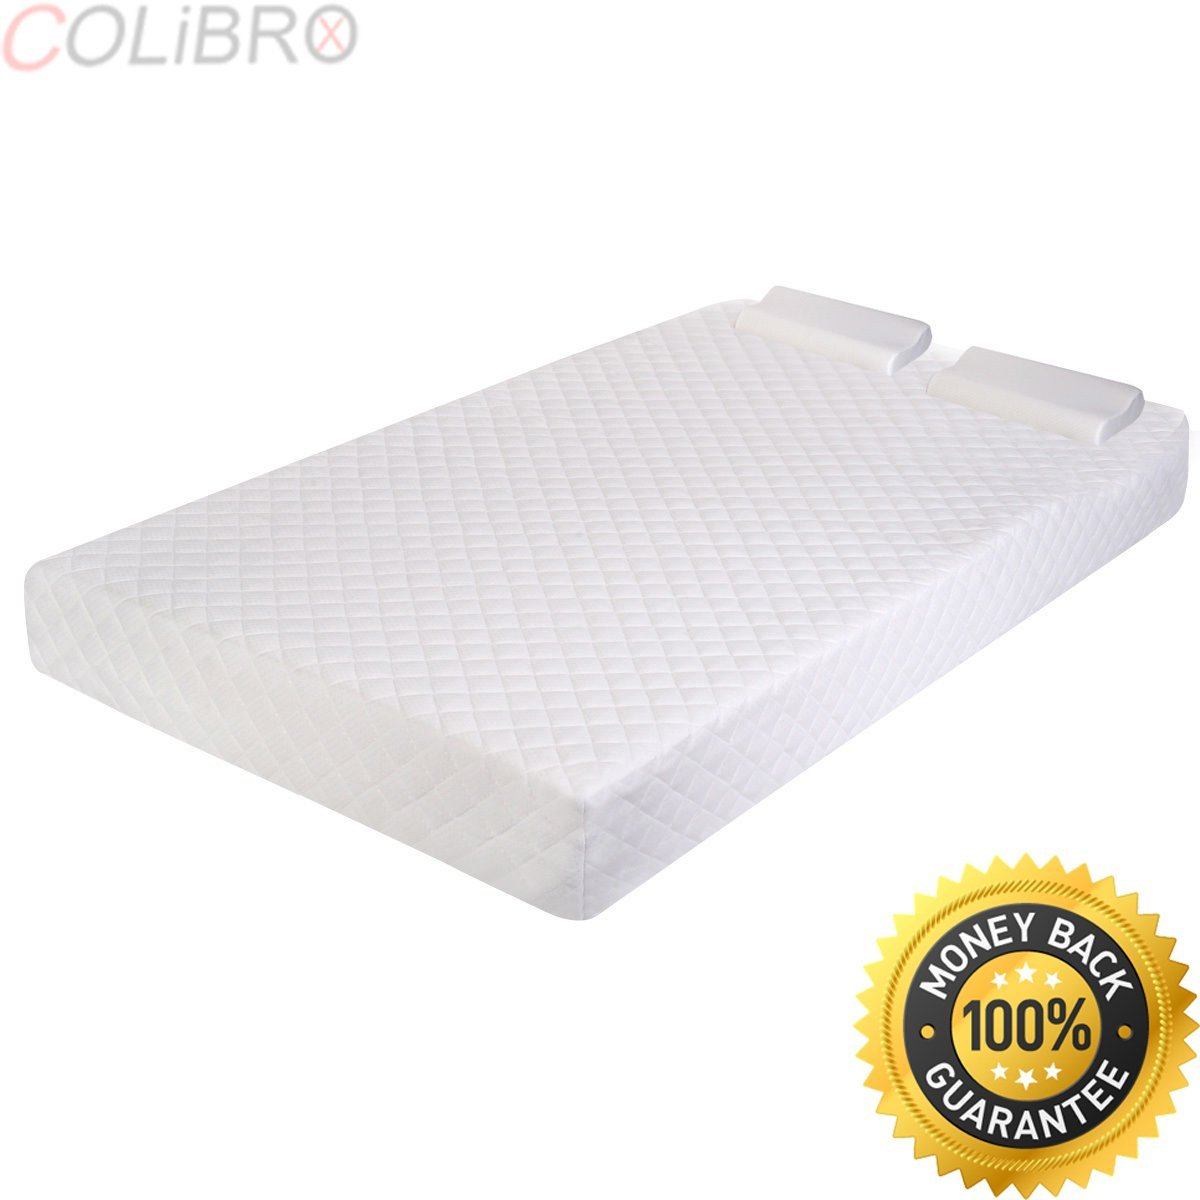 Cheap Sofa Bed Topper Queen, find Sofa Bed Topper Queen deals on